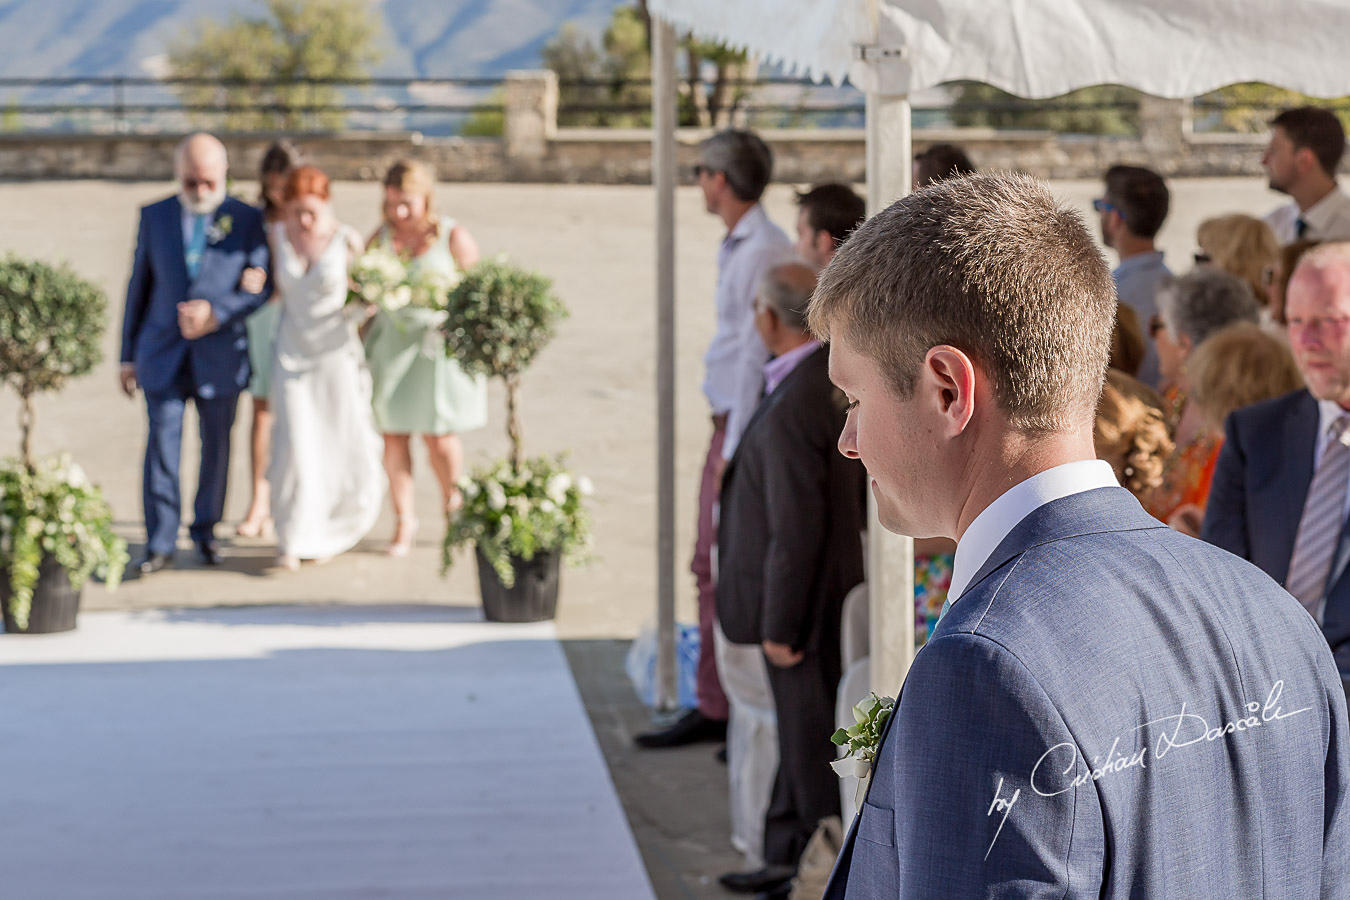 Wedding Celebration at Apokryfo - 36